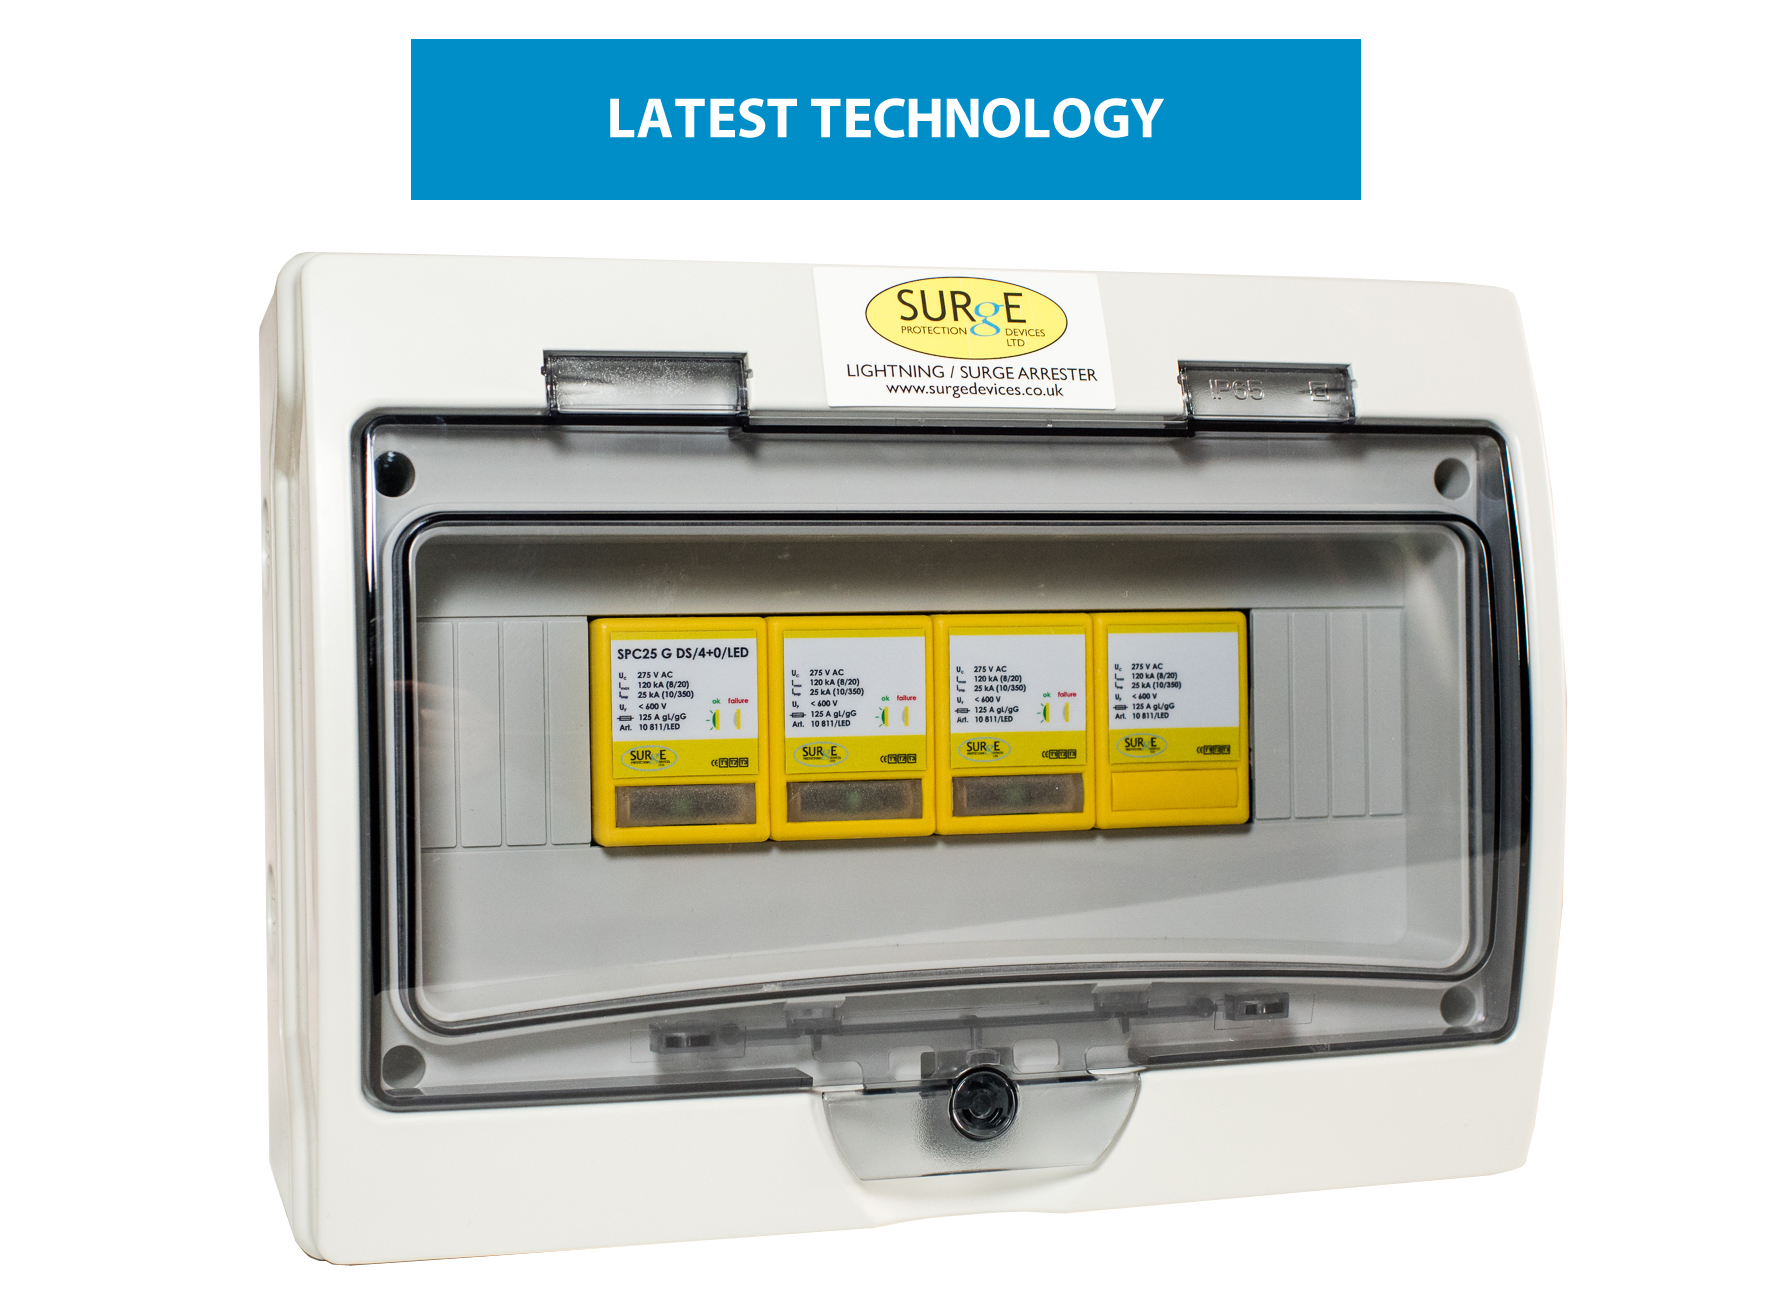 10811/LED/ENC - Type 1+2+3, 100kA (Level 1), 3 phase, all/full mode  protection with LED indication, complete in IP65 polycarbonate enclosure